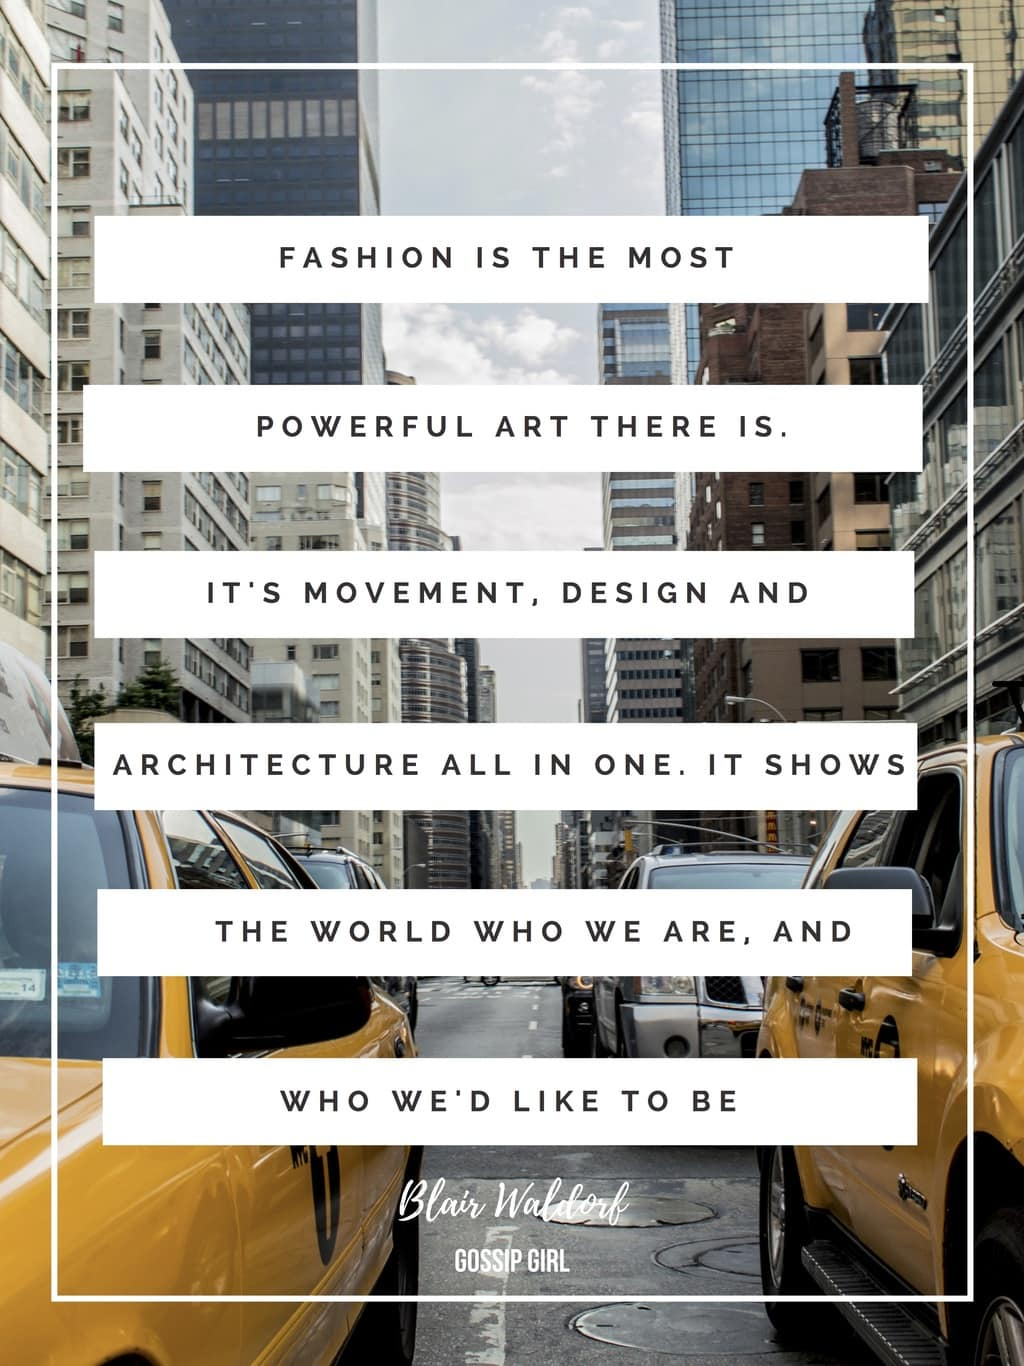 Fashion quotes: Fashion is the most powerful art there is. It's movement, design, and architecture all in one. It shows the world who we are, and who we'd like to be.